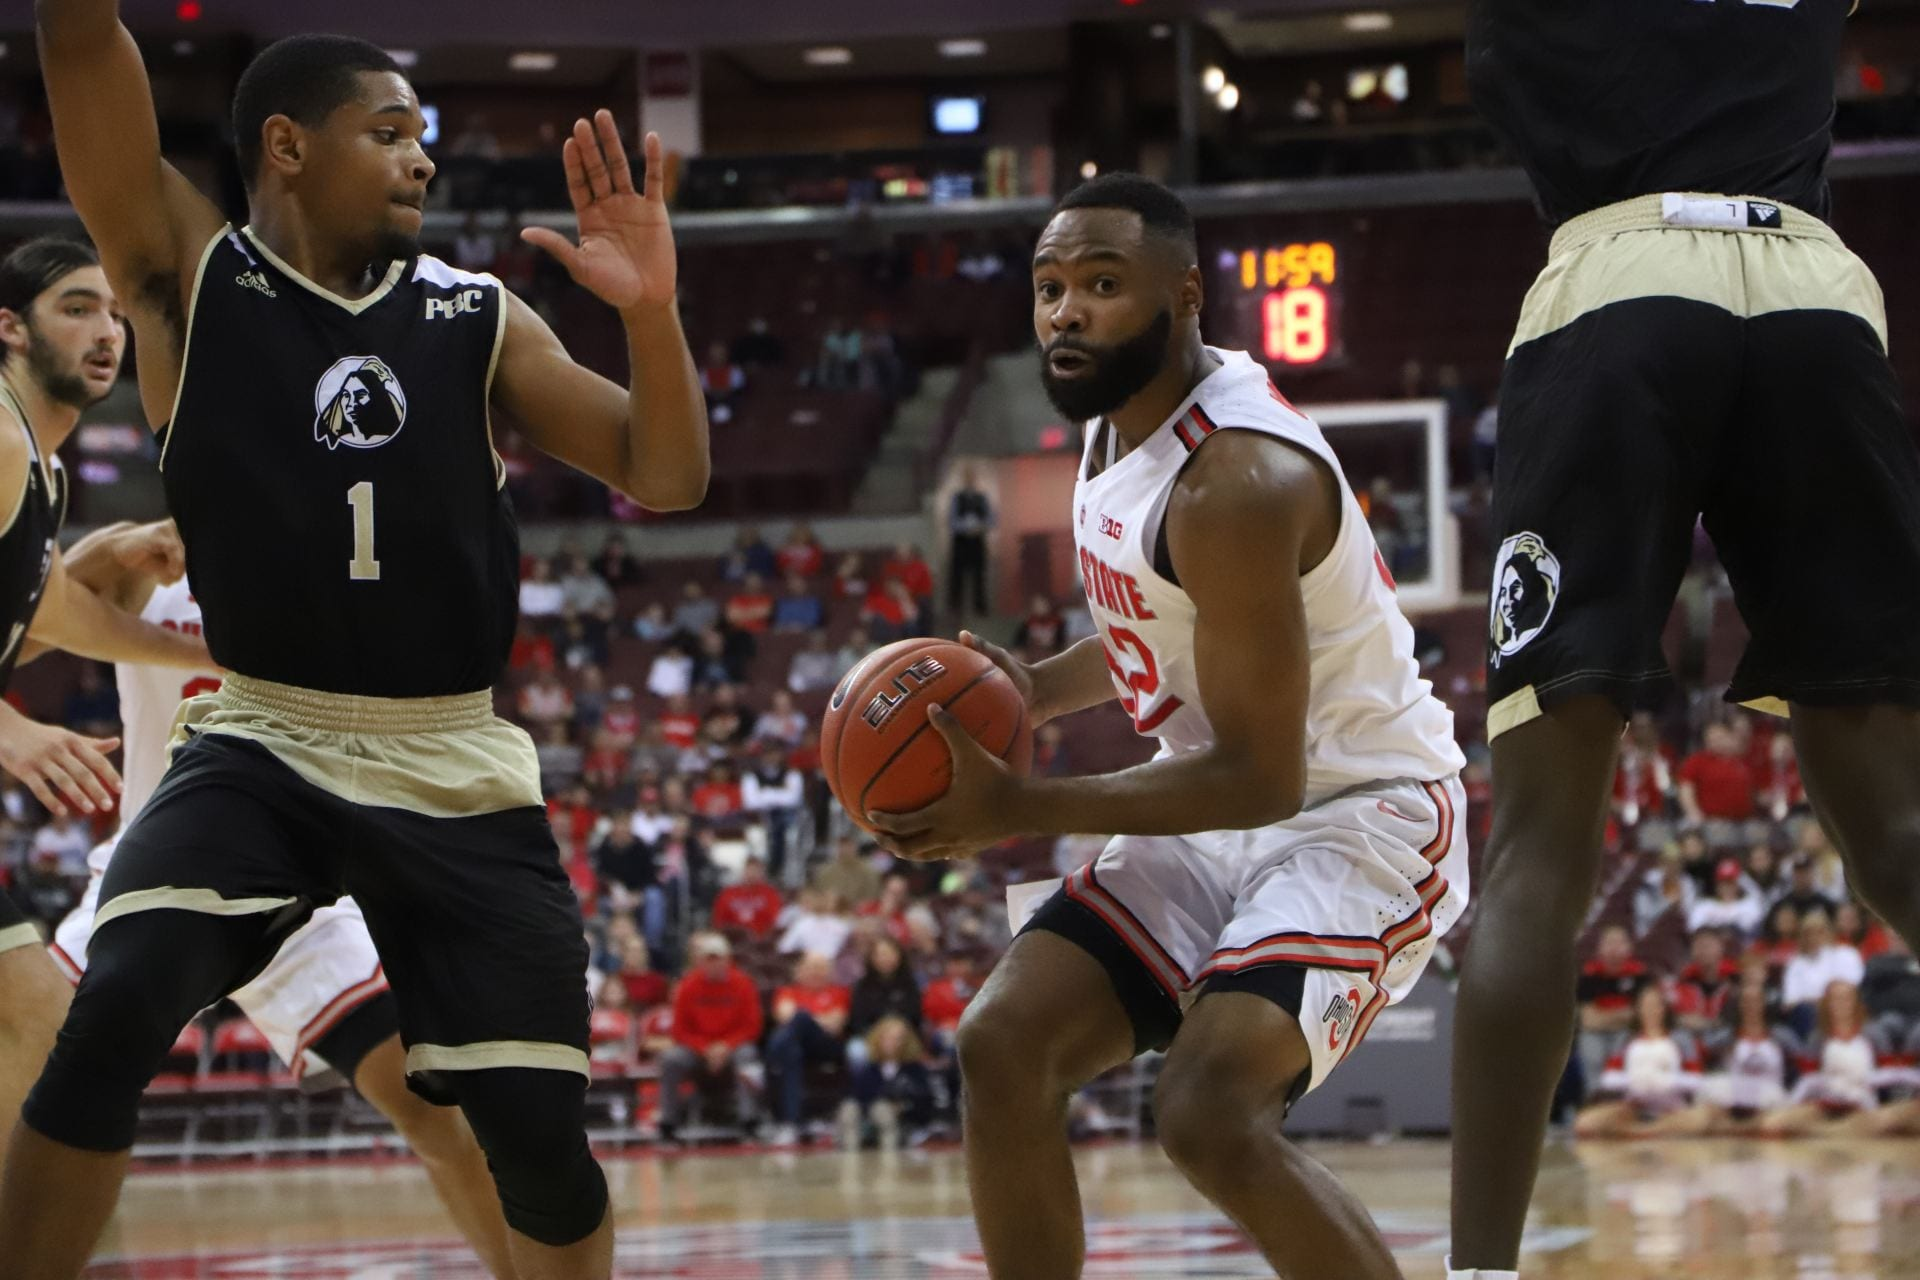 men's basketball: ohio state starts season as underdog against